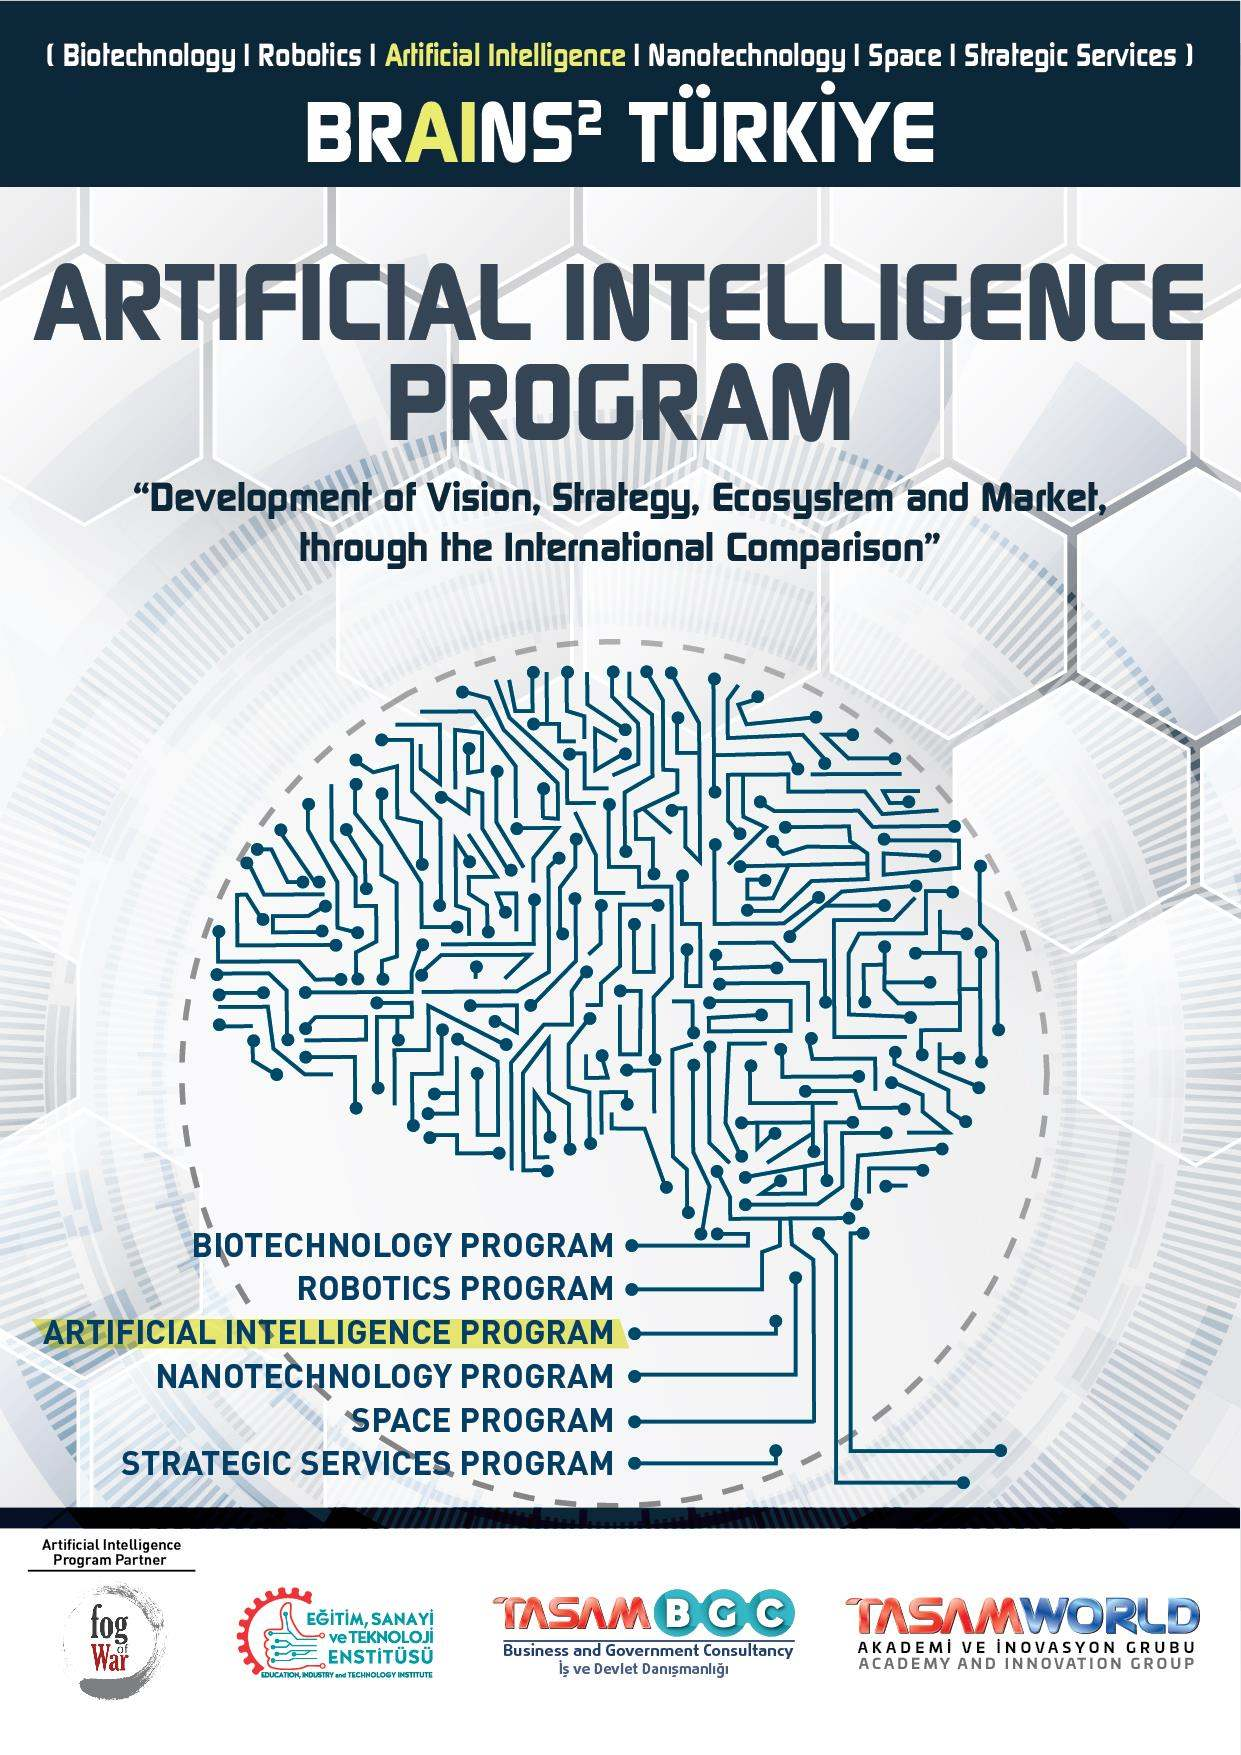 BRAINS² TÜRKİYE | Artificial Intelligence Program